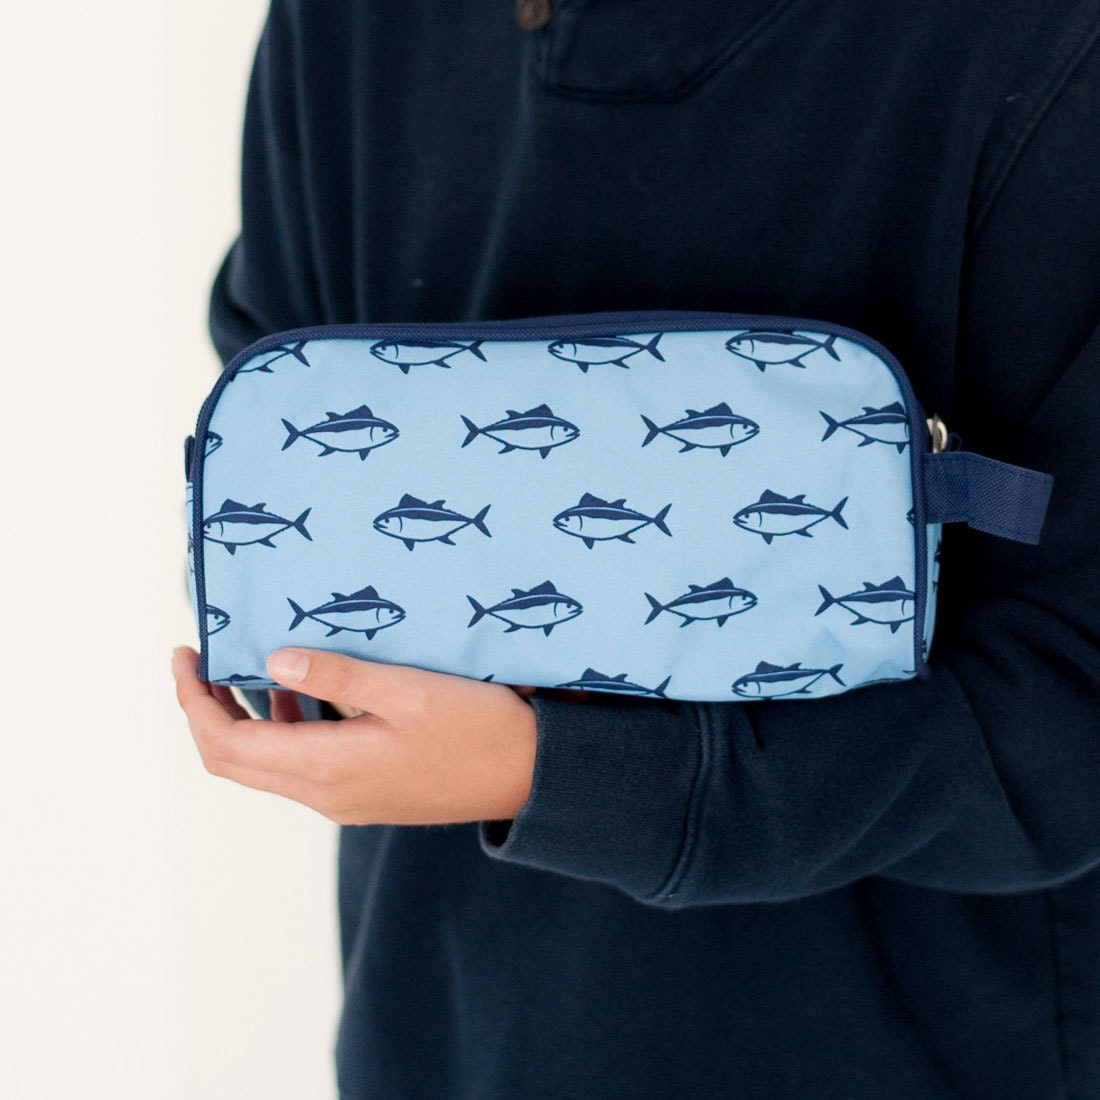 ... Embroidery, Toiletry Bags. gallery photo gallery photo ...